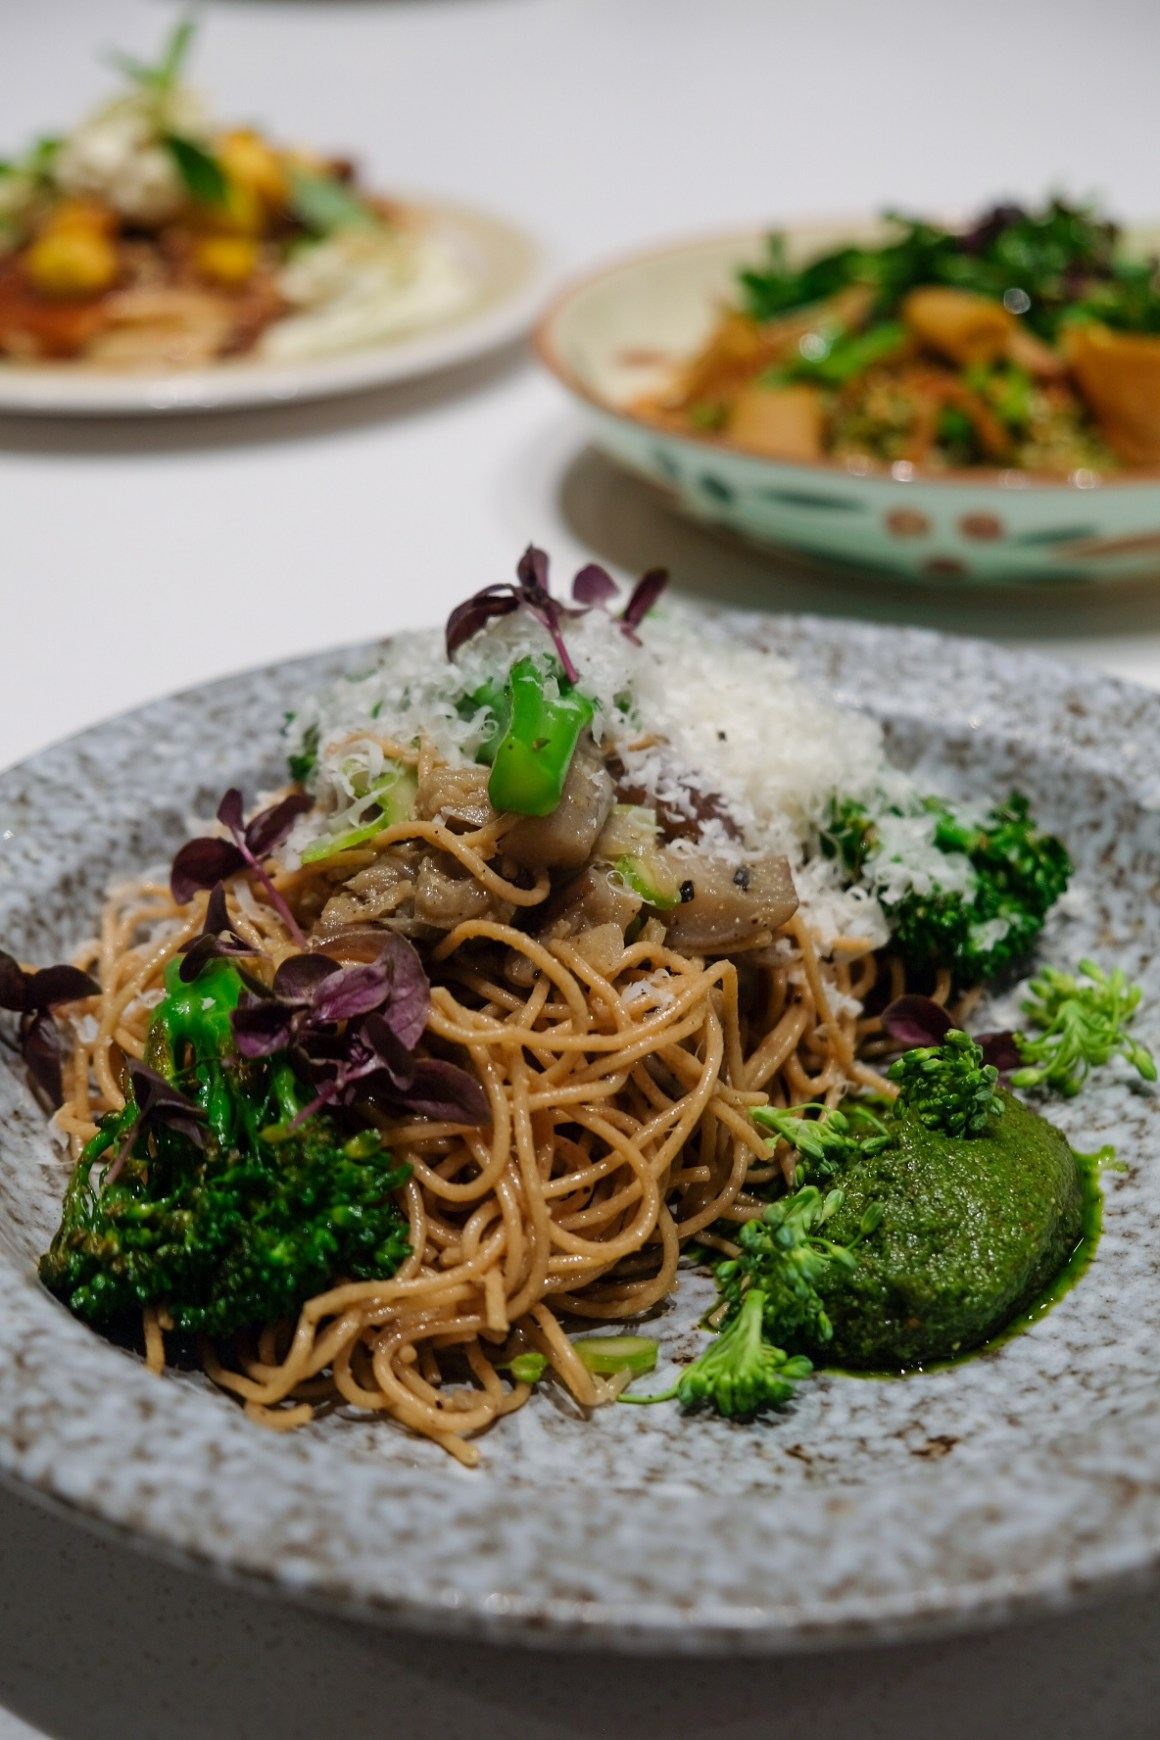 Tiong Bahru Bakery Diner New Menu By Chef Paul Albert - Miso Whole Wheat Spaghetti with Broccolini ($19)